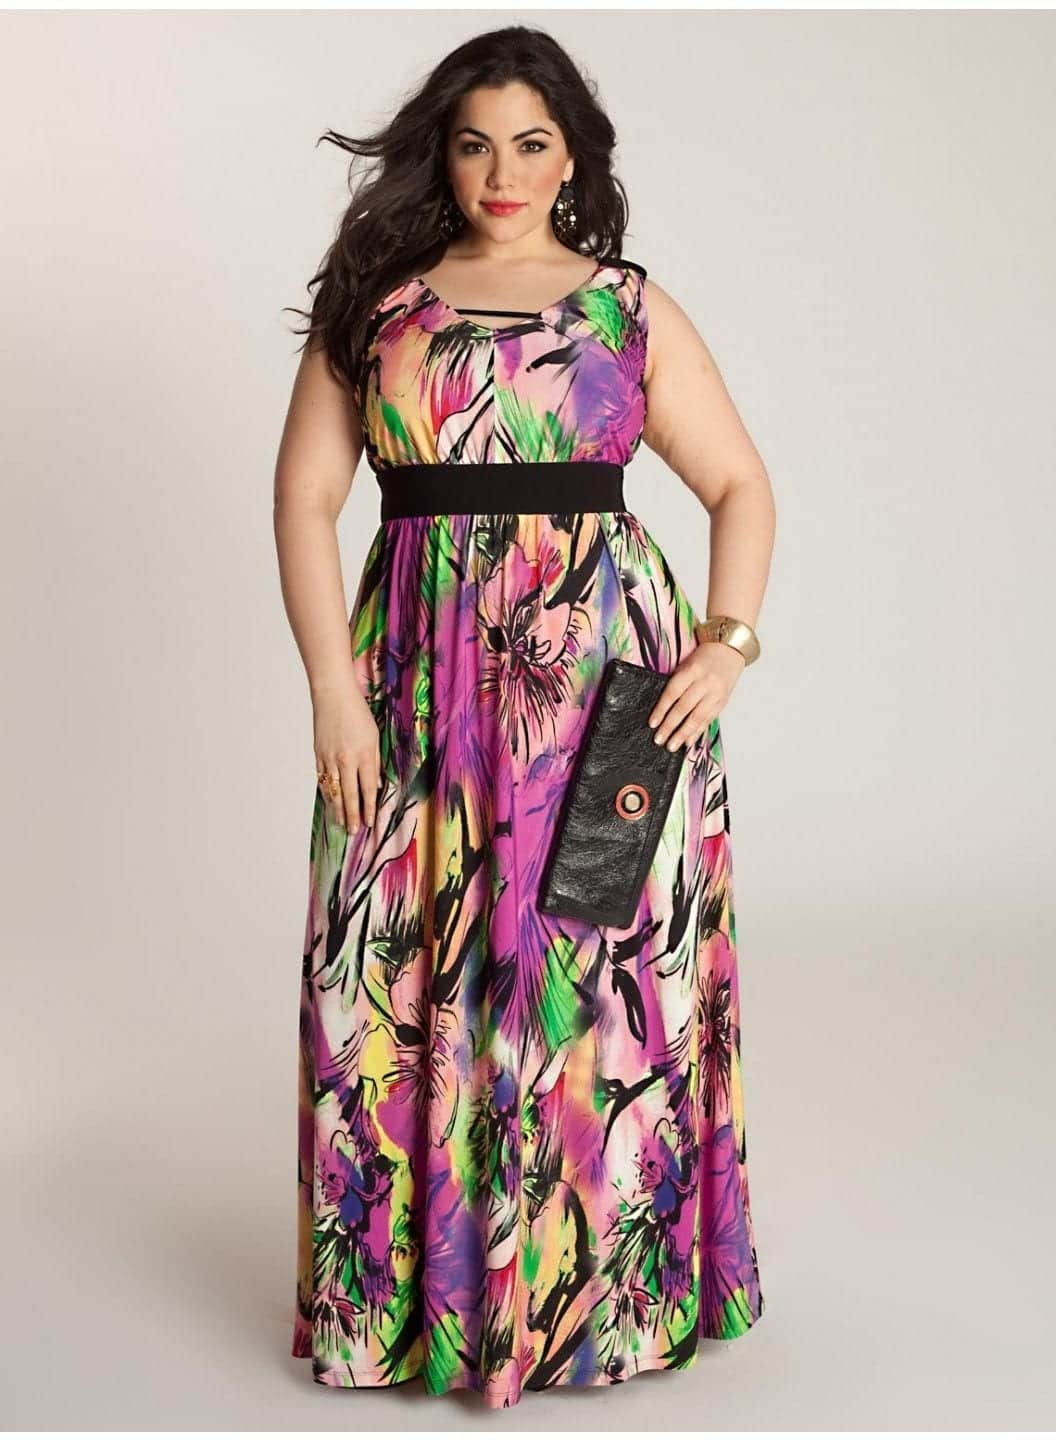 Plus-Size-Maxi-Dresses-For-Spring-Summer-2014-6 Apple Shape Body Outfits-19 Fashion Tips for Apple Figure